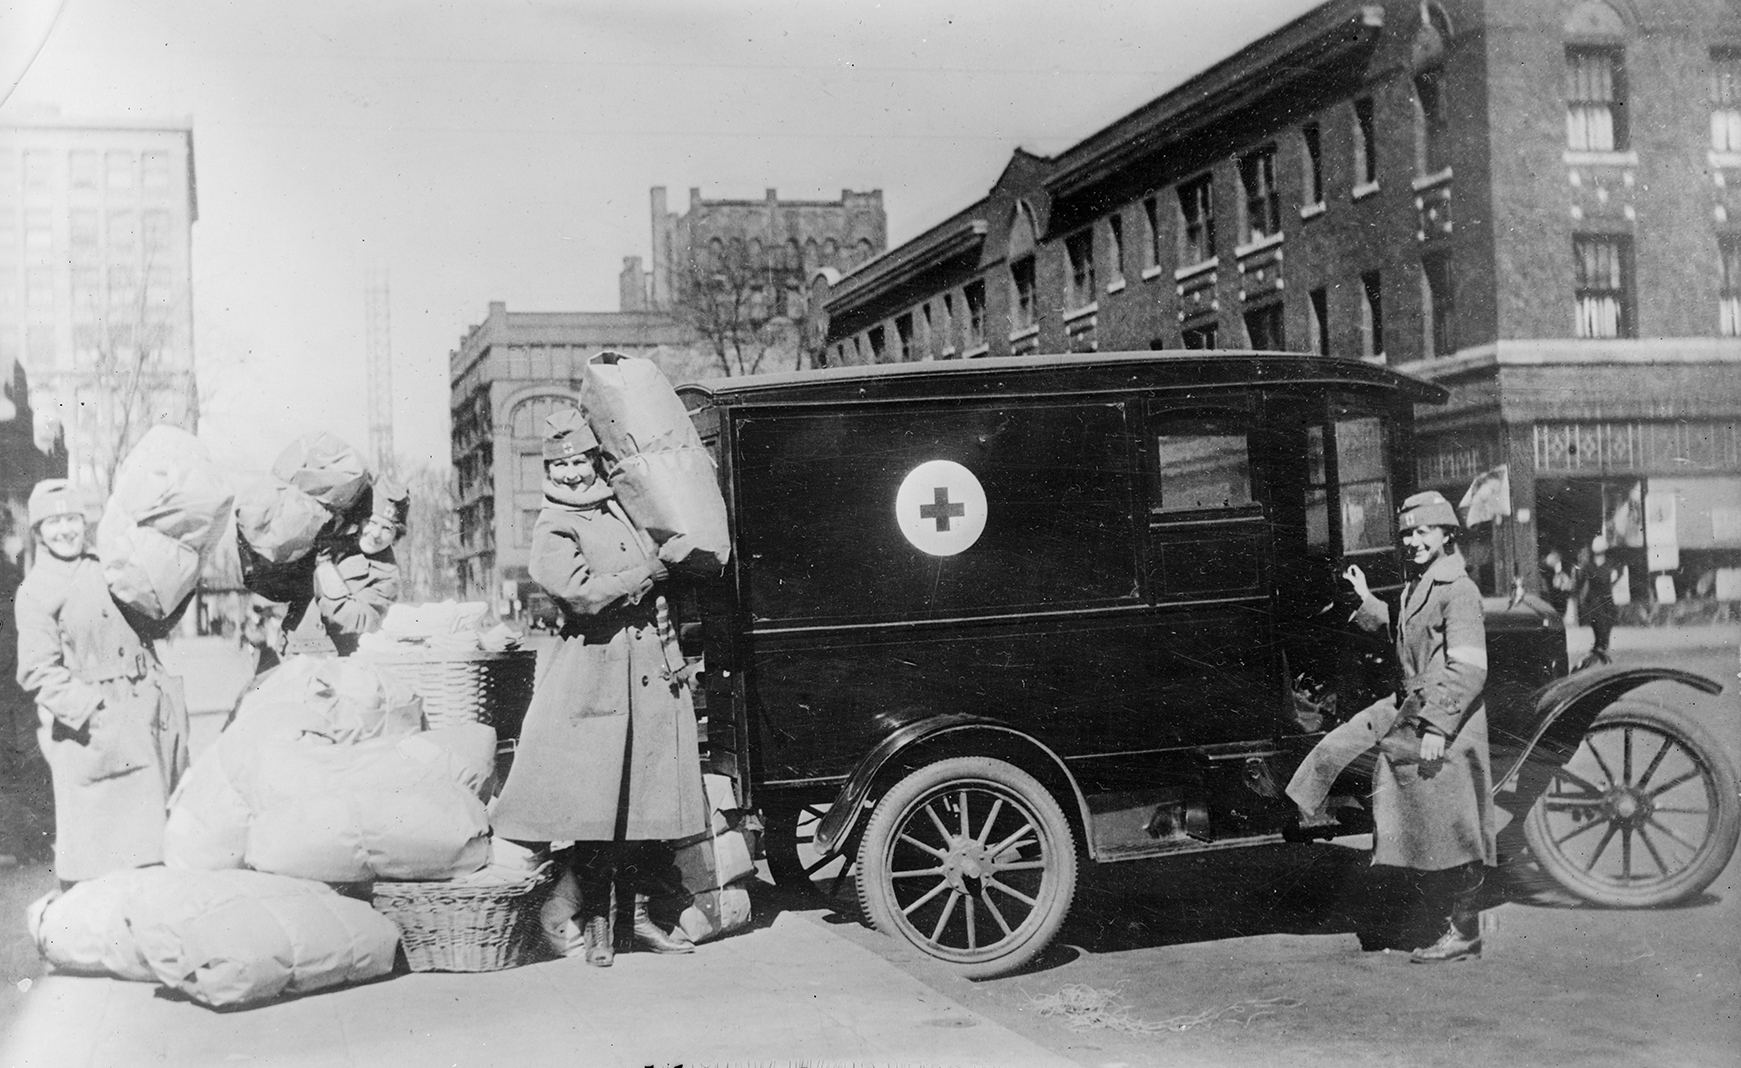 Members of the Red Cross Motor Corps. deliver supplies in Minneapolis